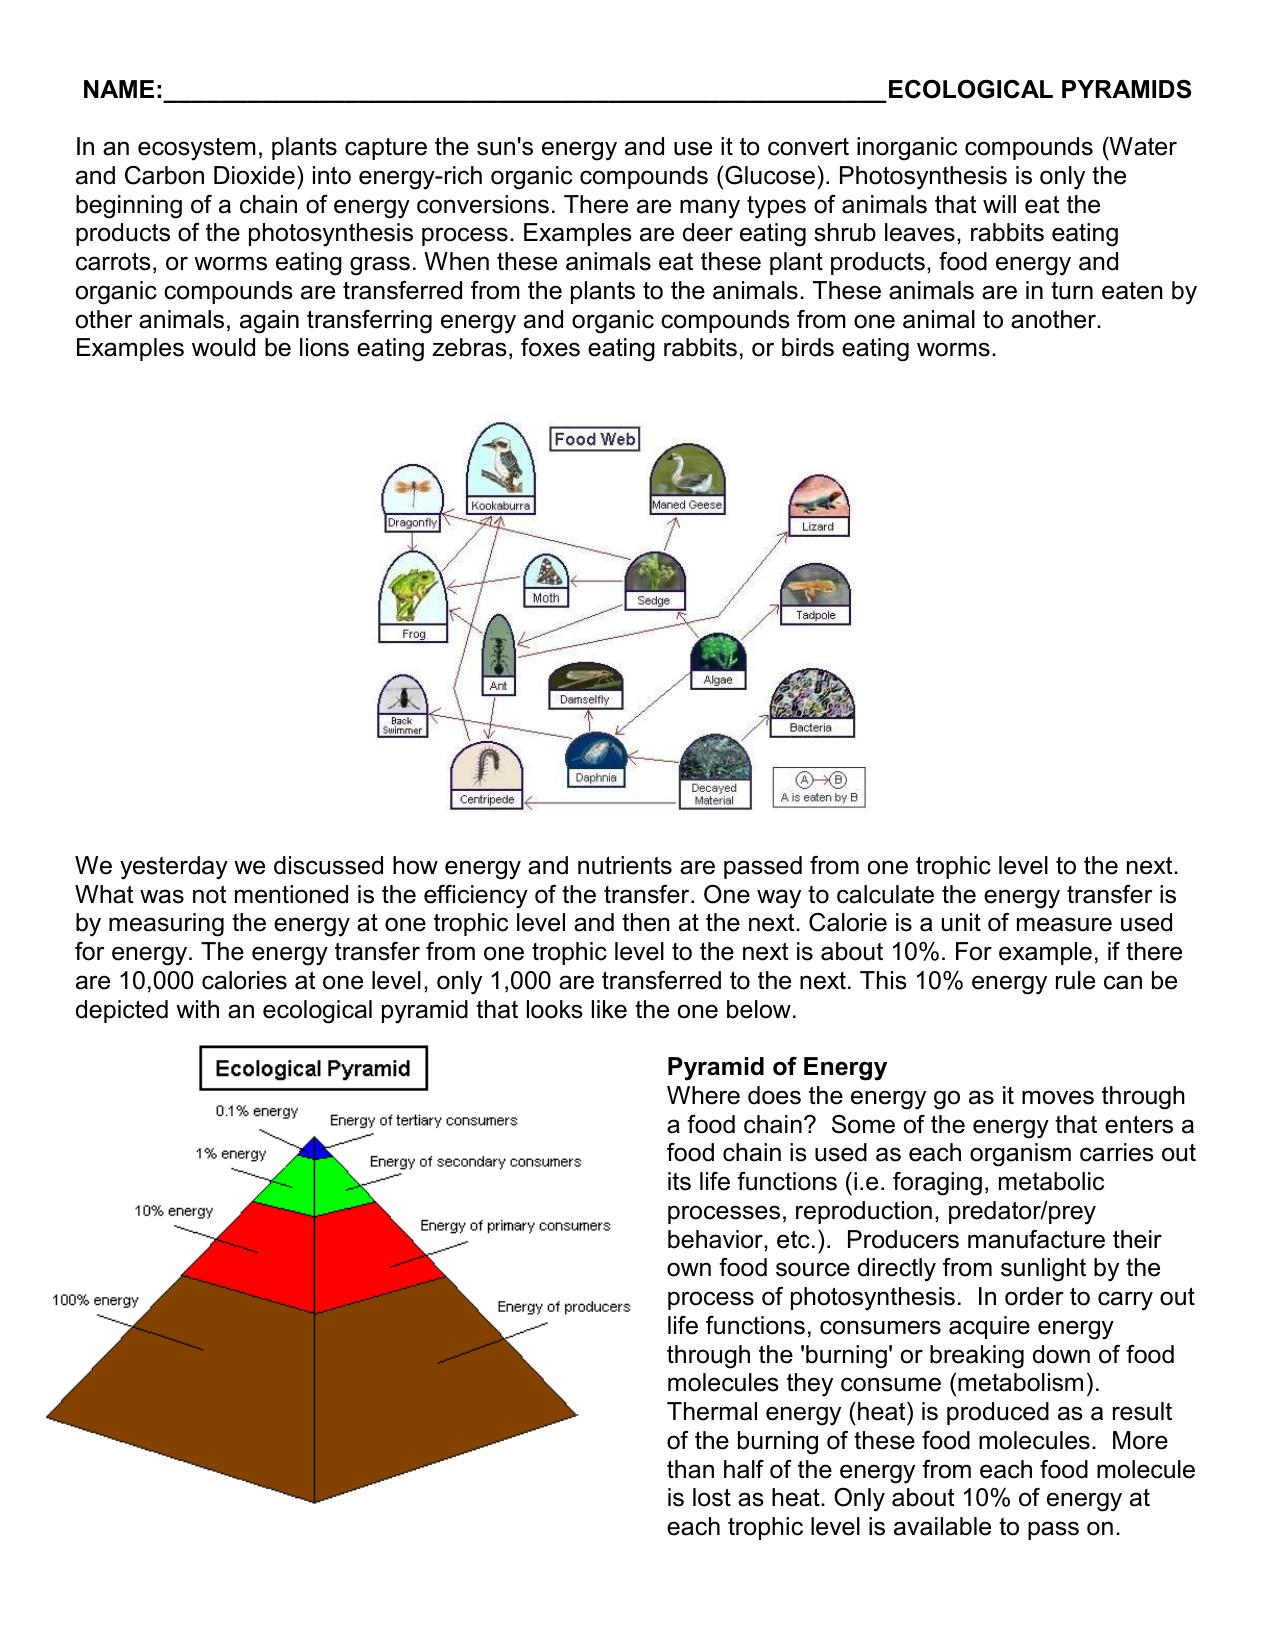 Food Chains Food Webs And Ecological Pyramids